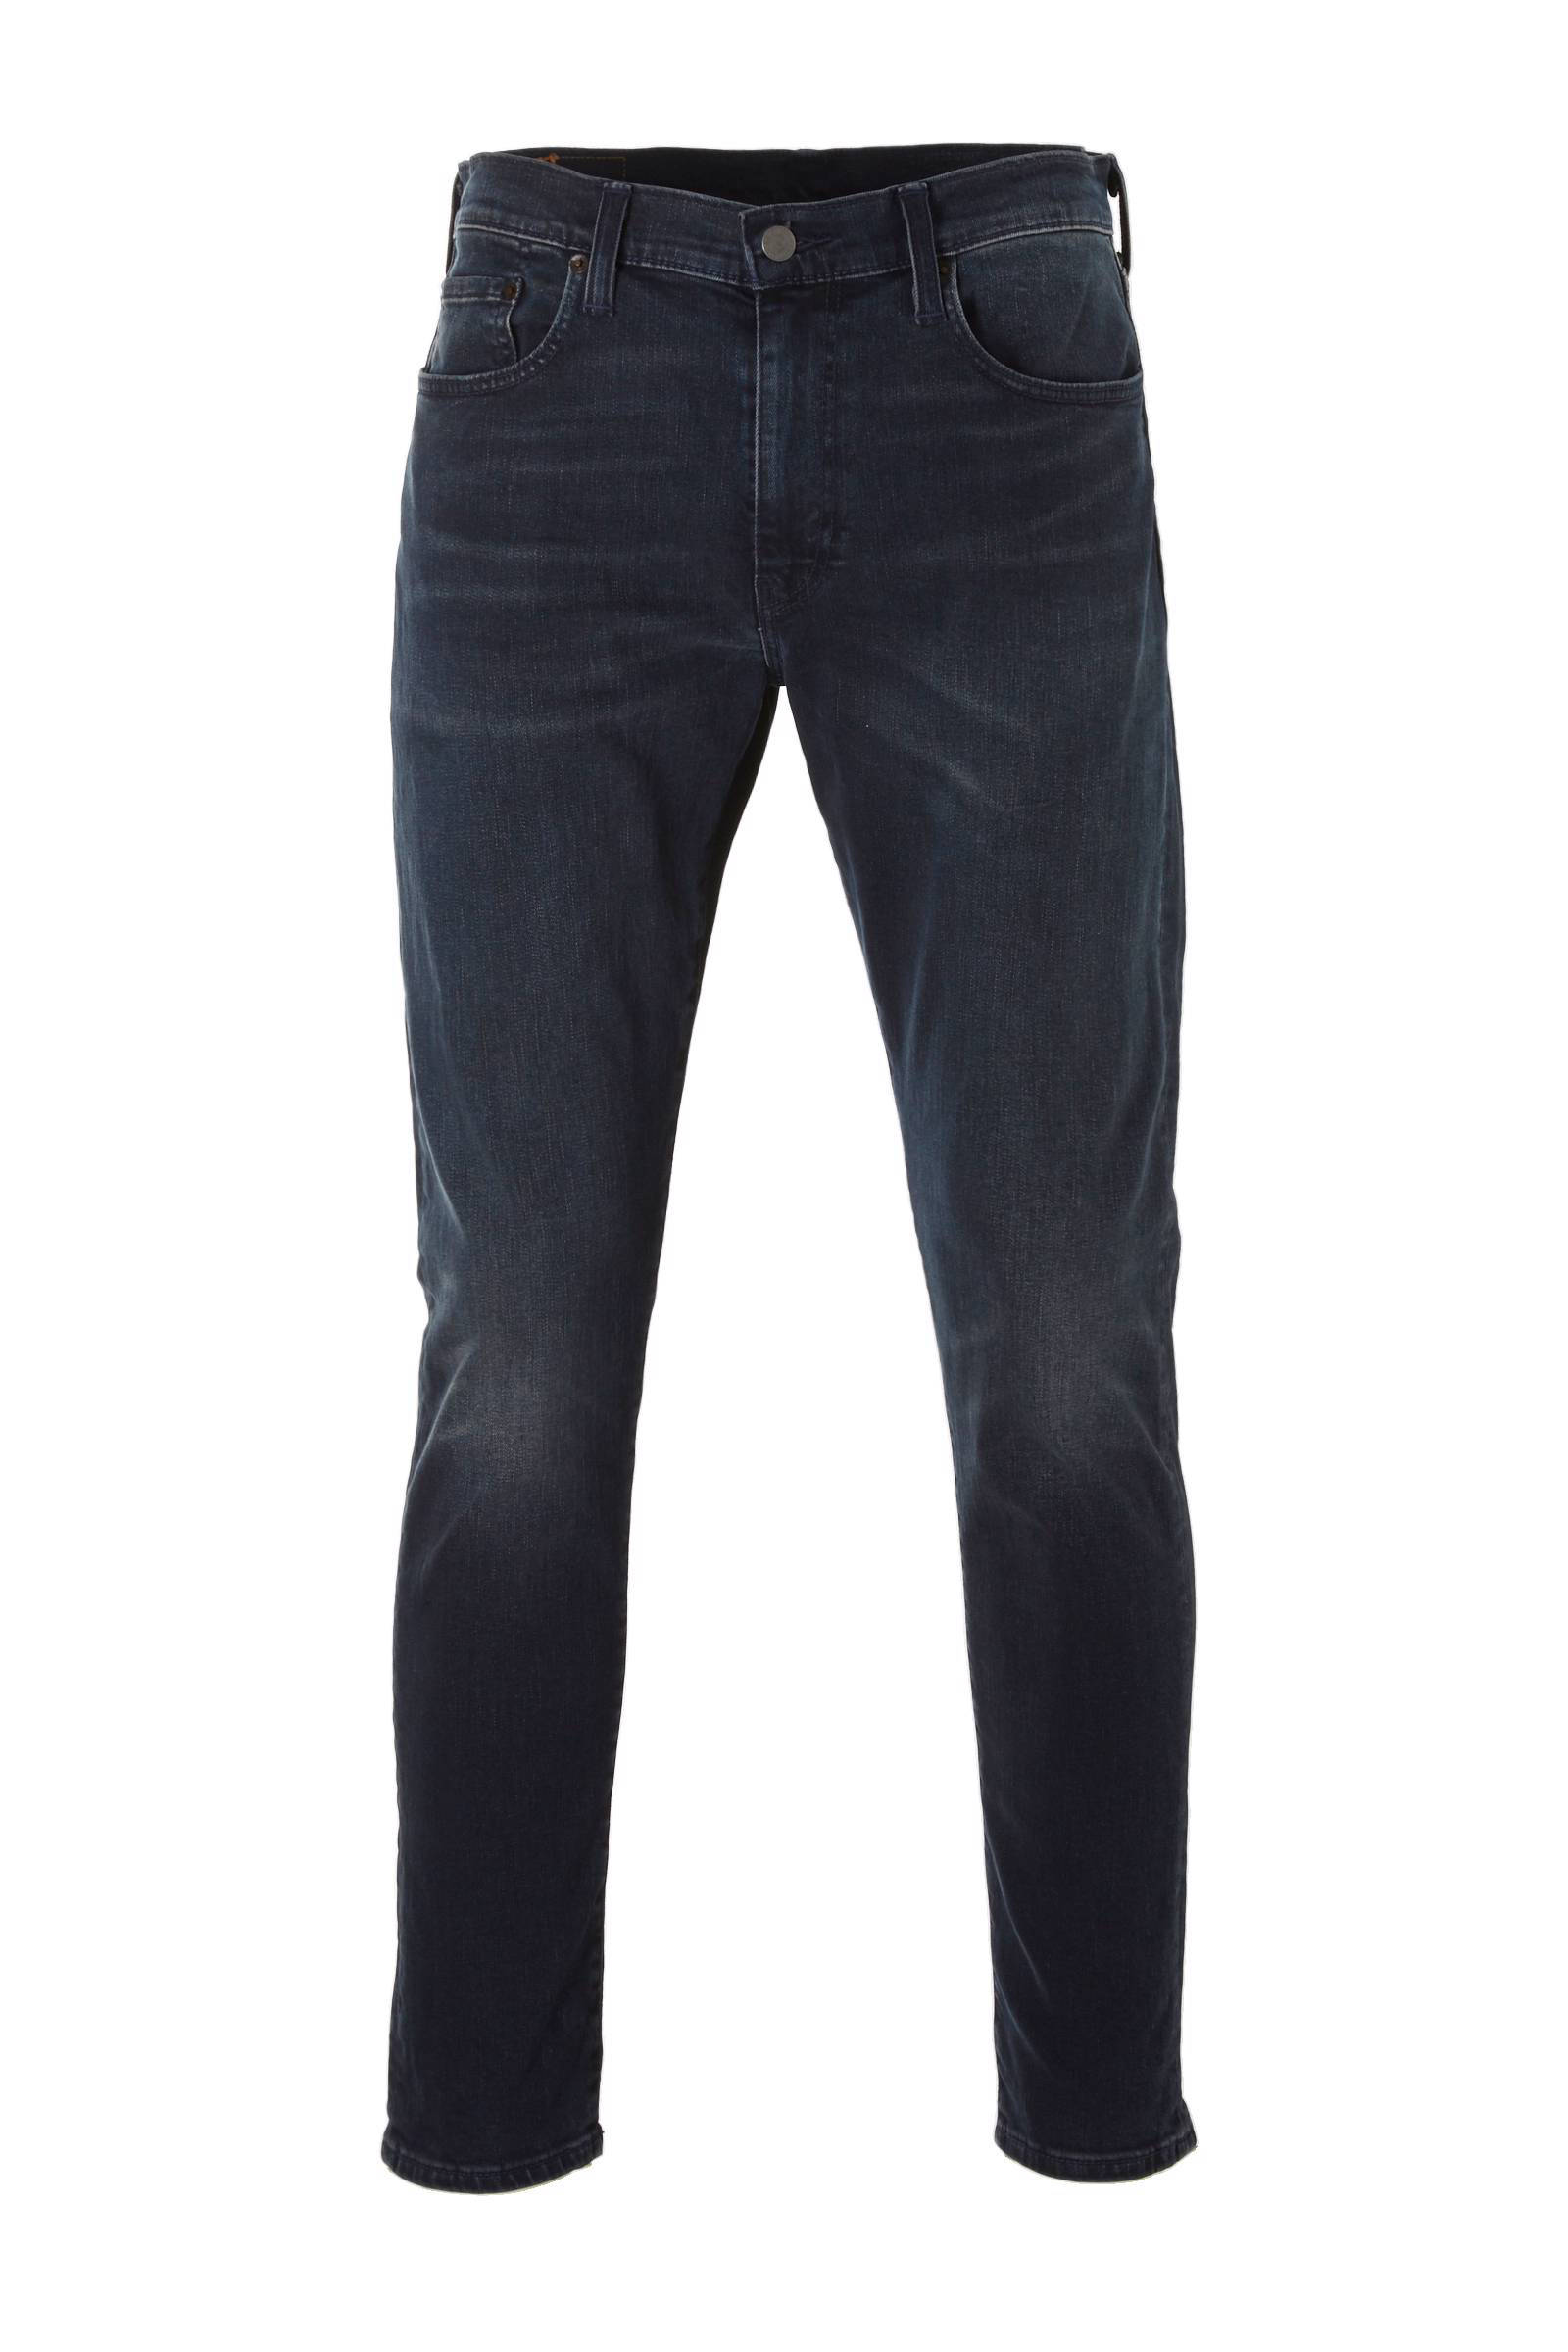 Levi's 512 slim tapered fit jeans (heren)